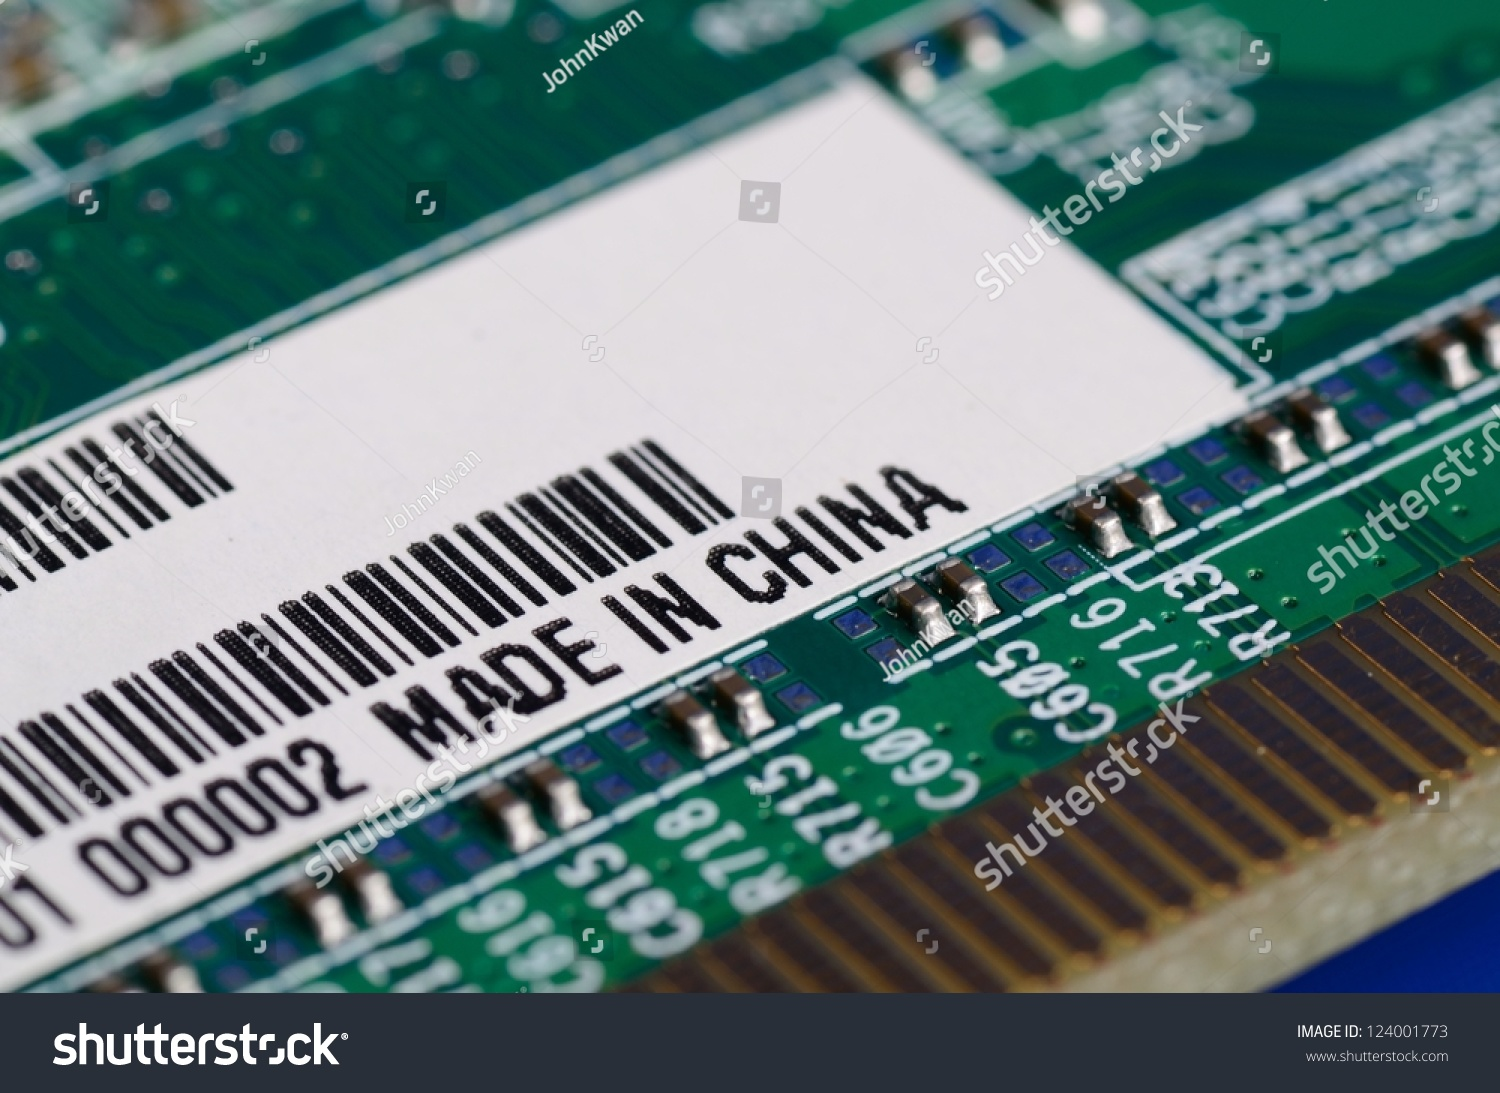 Computer Parts With The Label Made In China Stock Photo